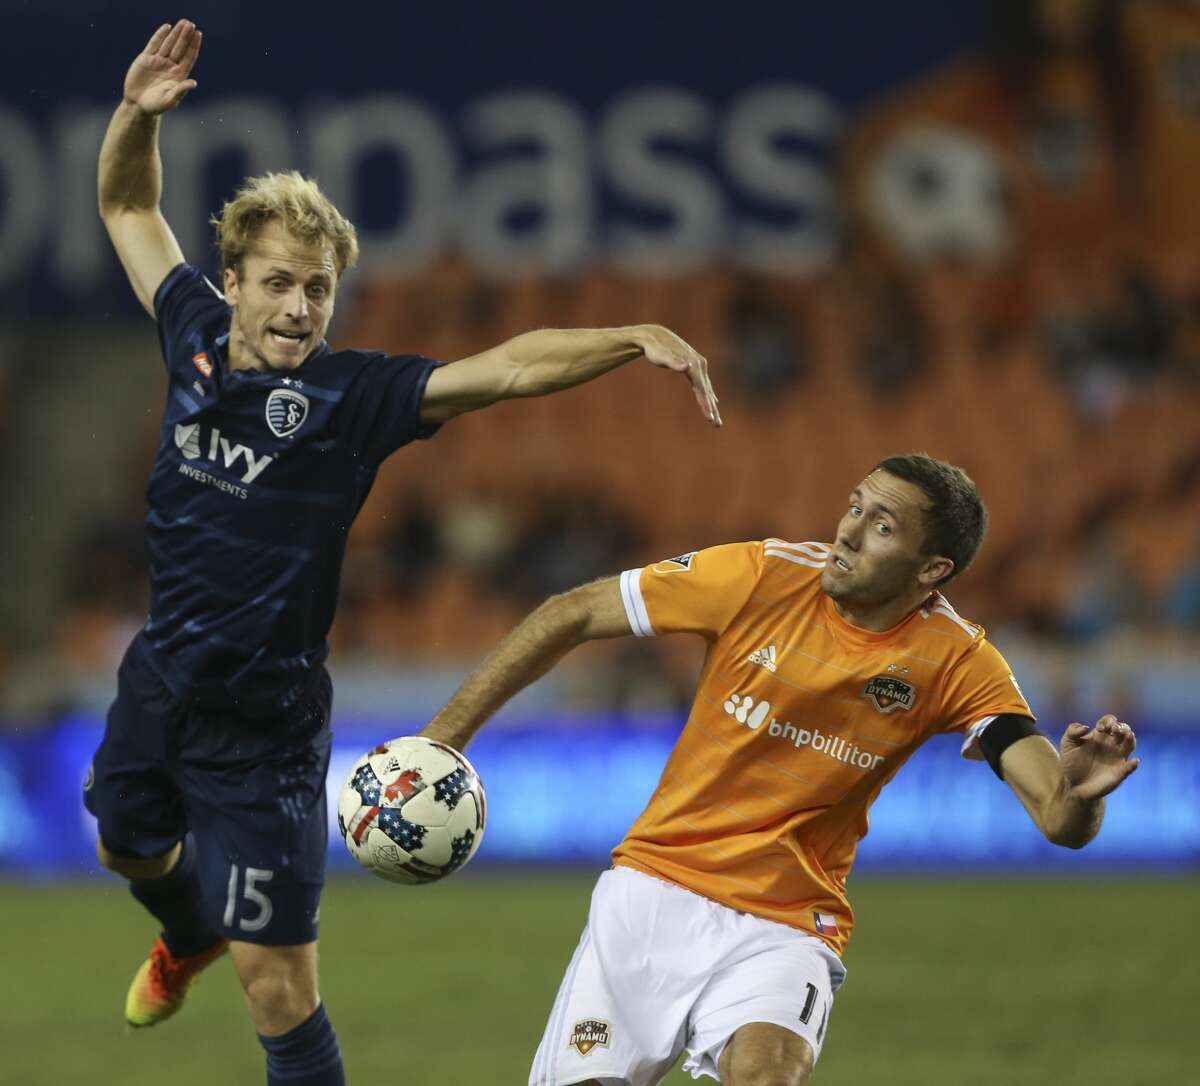 Houston Dynamo midfielder Andrew Wenger (11) and Sporting Kansas City defender Seth Sinovic (15) go after the ball during the second half of the MLS game at BBVA Compass Stadium Wednesday, Oct. 11, 2017, in Houston. Houston Dynamo defeated Sporting Kansas City 2-1. ( Yi-Chin Lee / Houston Chronicle )